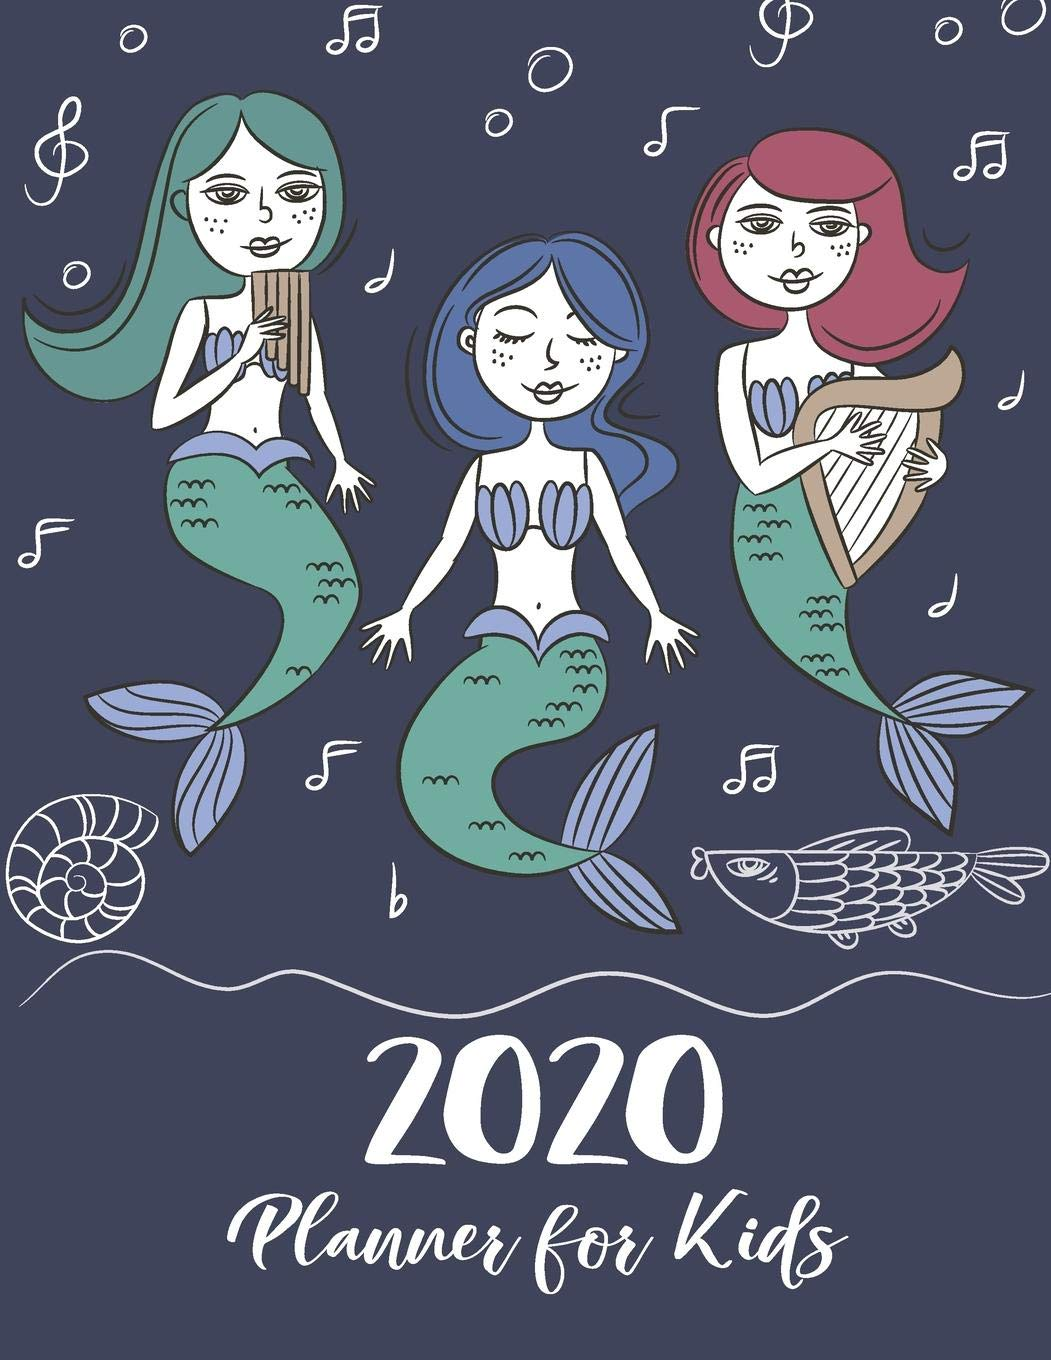 Kids December Calendar 2020 2020 Planner For Kids: Mermaids Sea Cover | Children's Daily